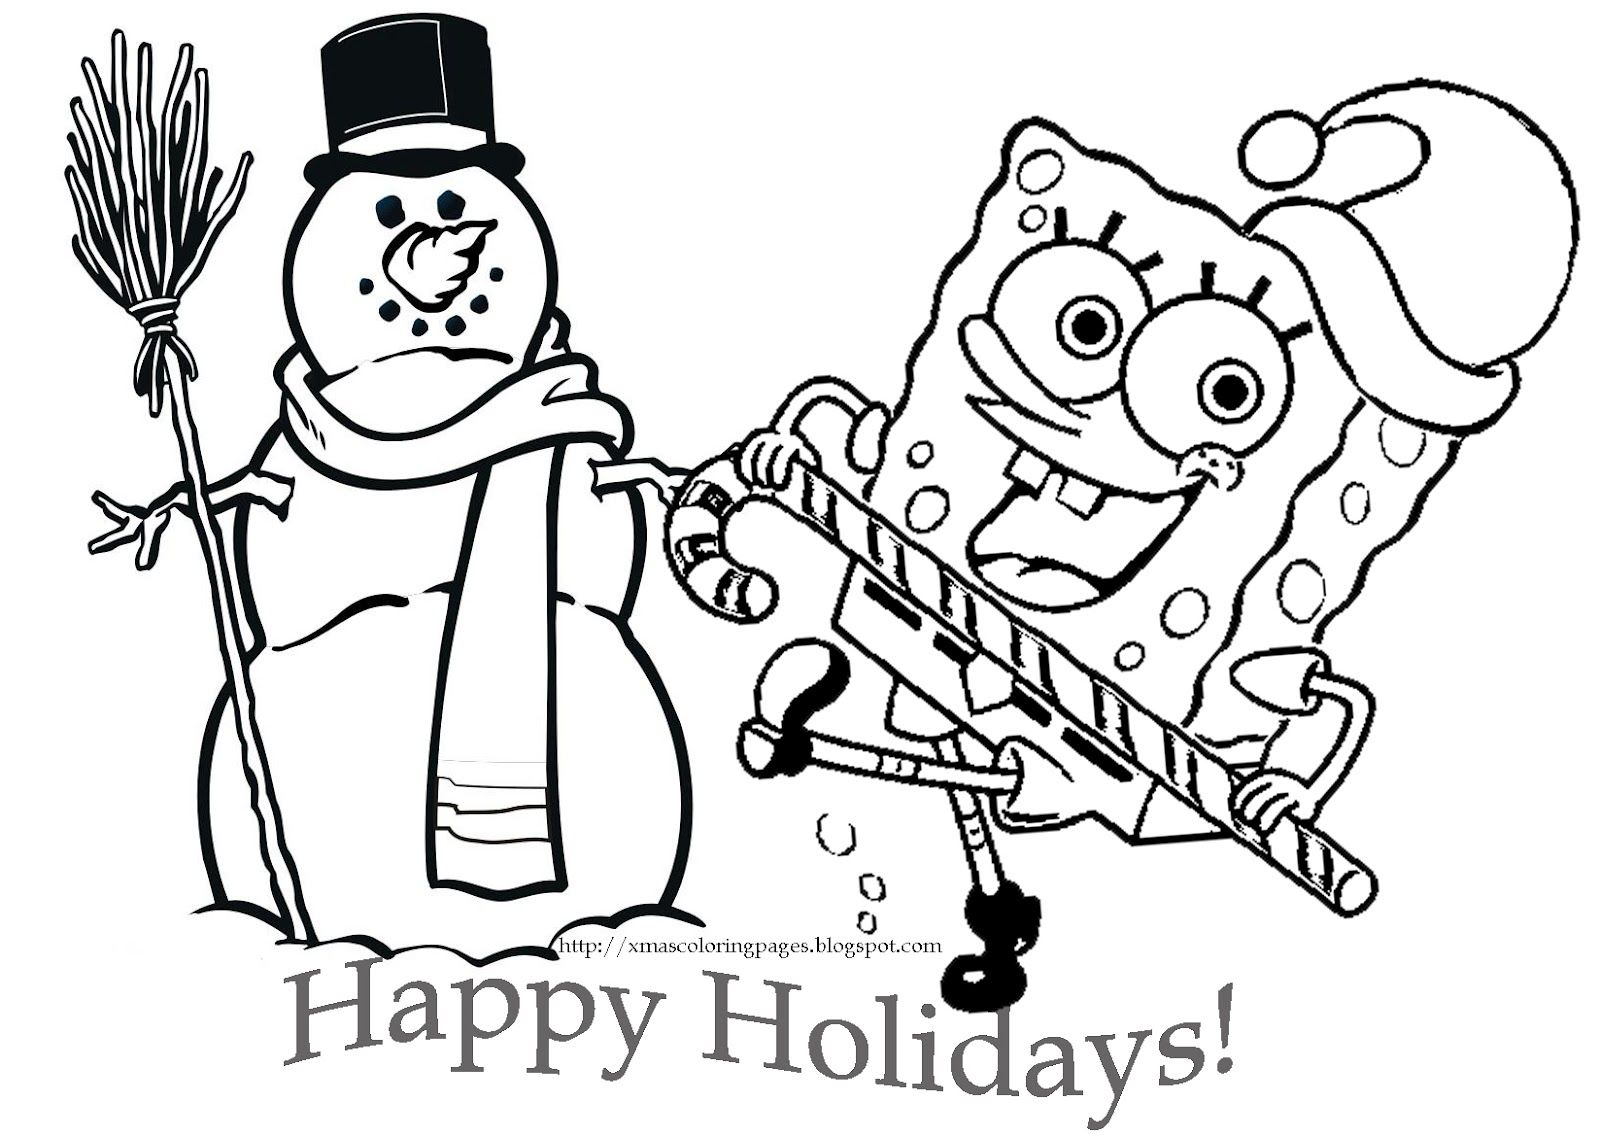 Spongebob Coloring Book | SPONGEBOB SQUAREPANTS CHRISTMAS COLORING ...